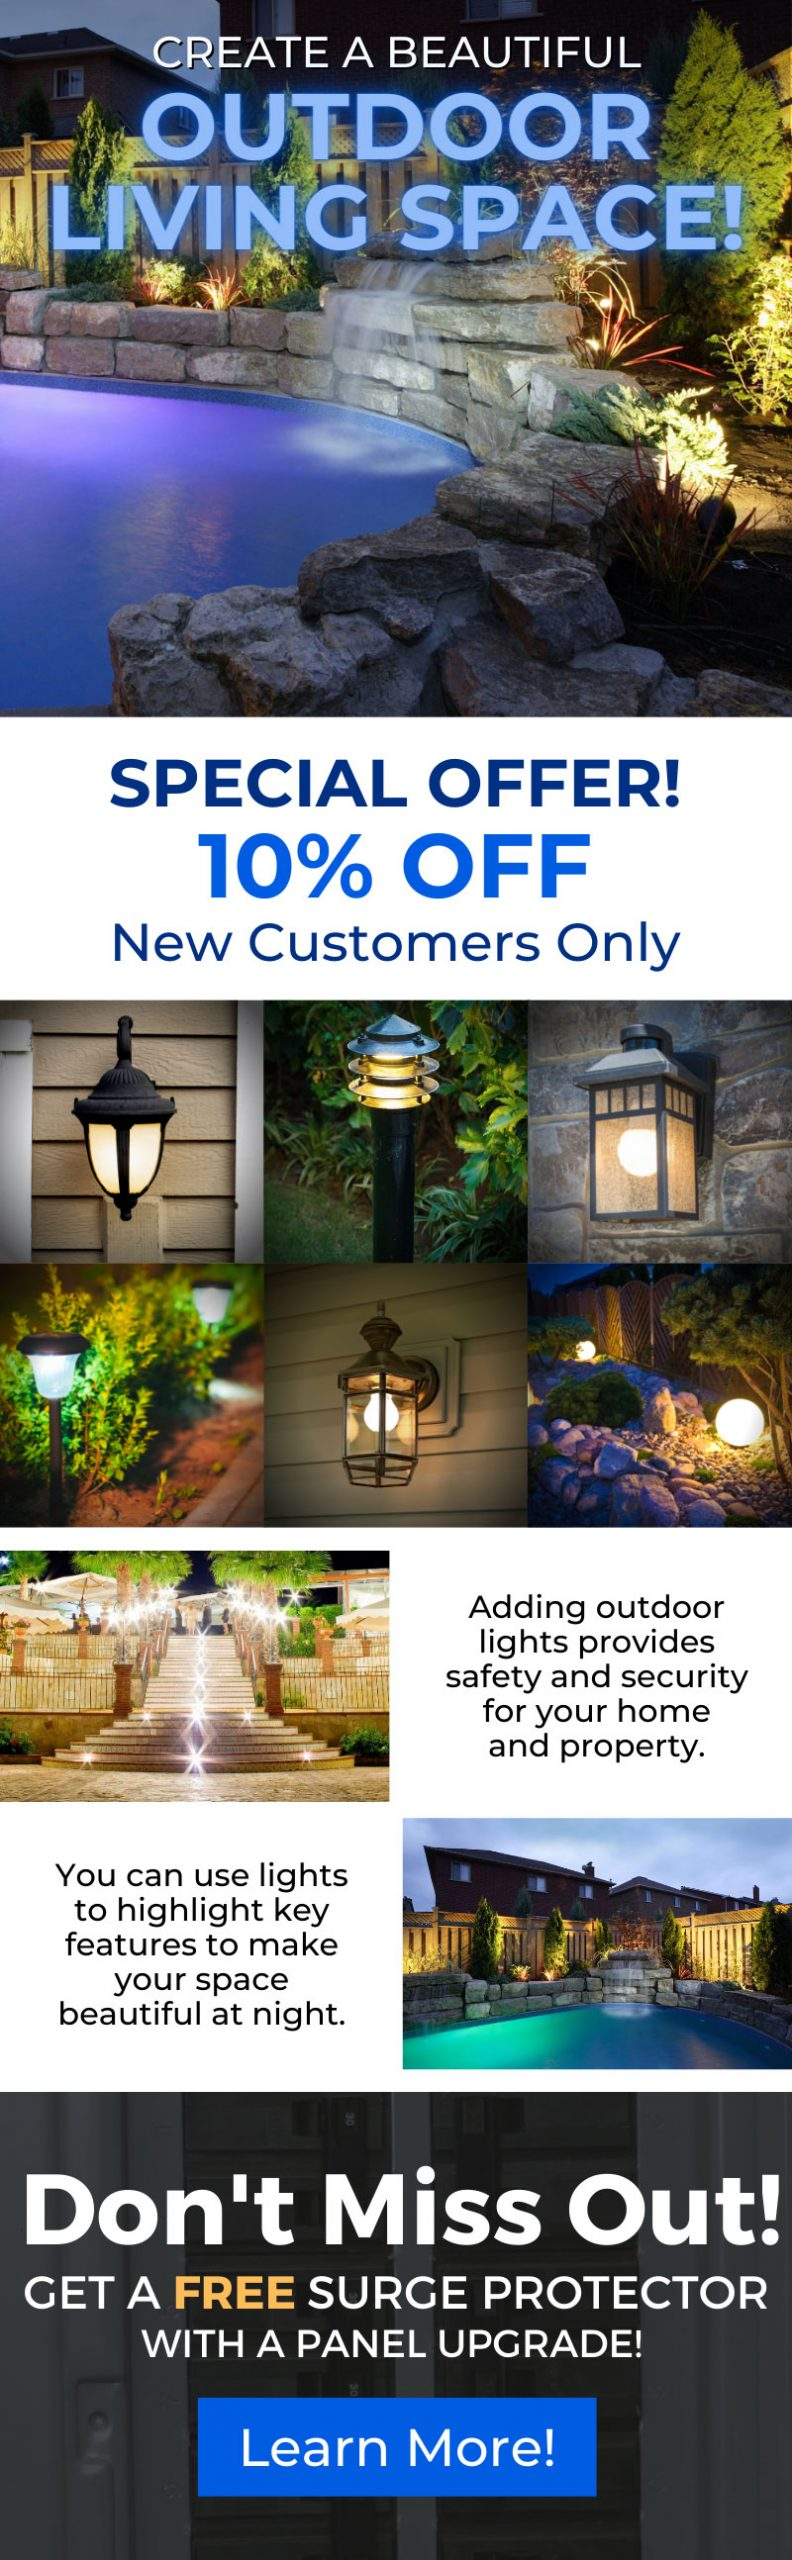 Light Up Your Outdoor Space! 💡 3